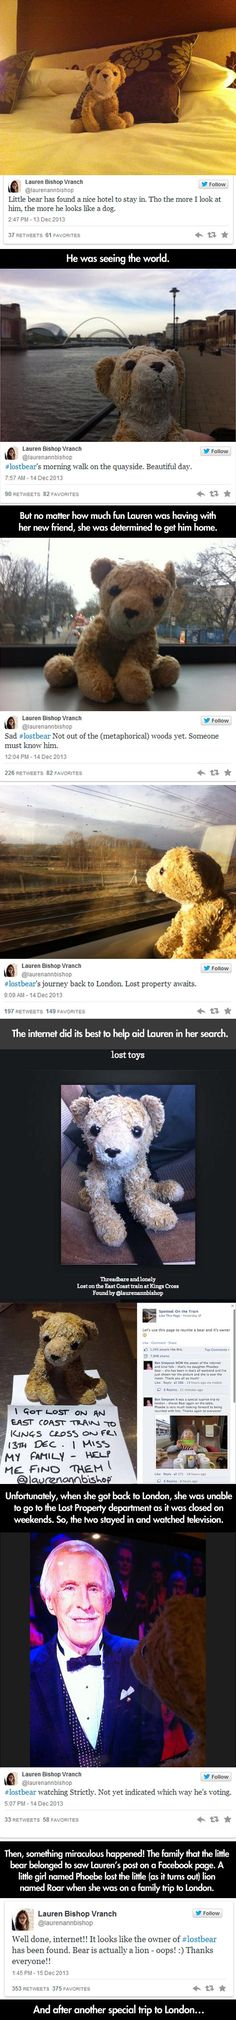 Little girl loses her stuffed animal, then the Internet does something awesome… PART 2